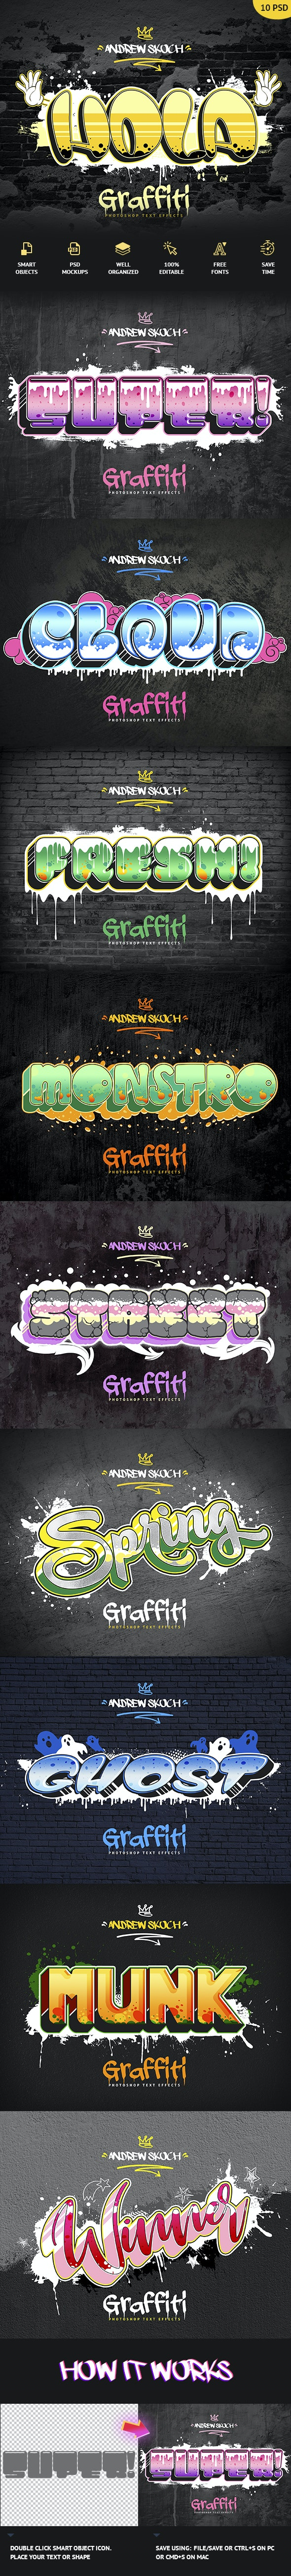 Graffiti Text Effects - 10 PSD - vol 3 - Text Effects Actions